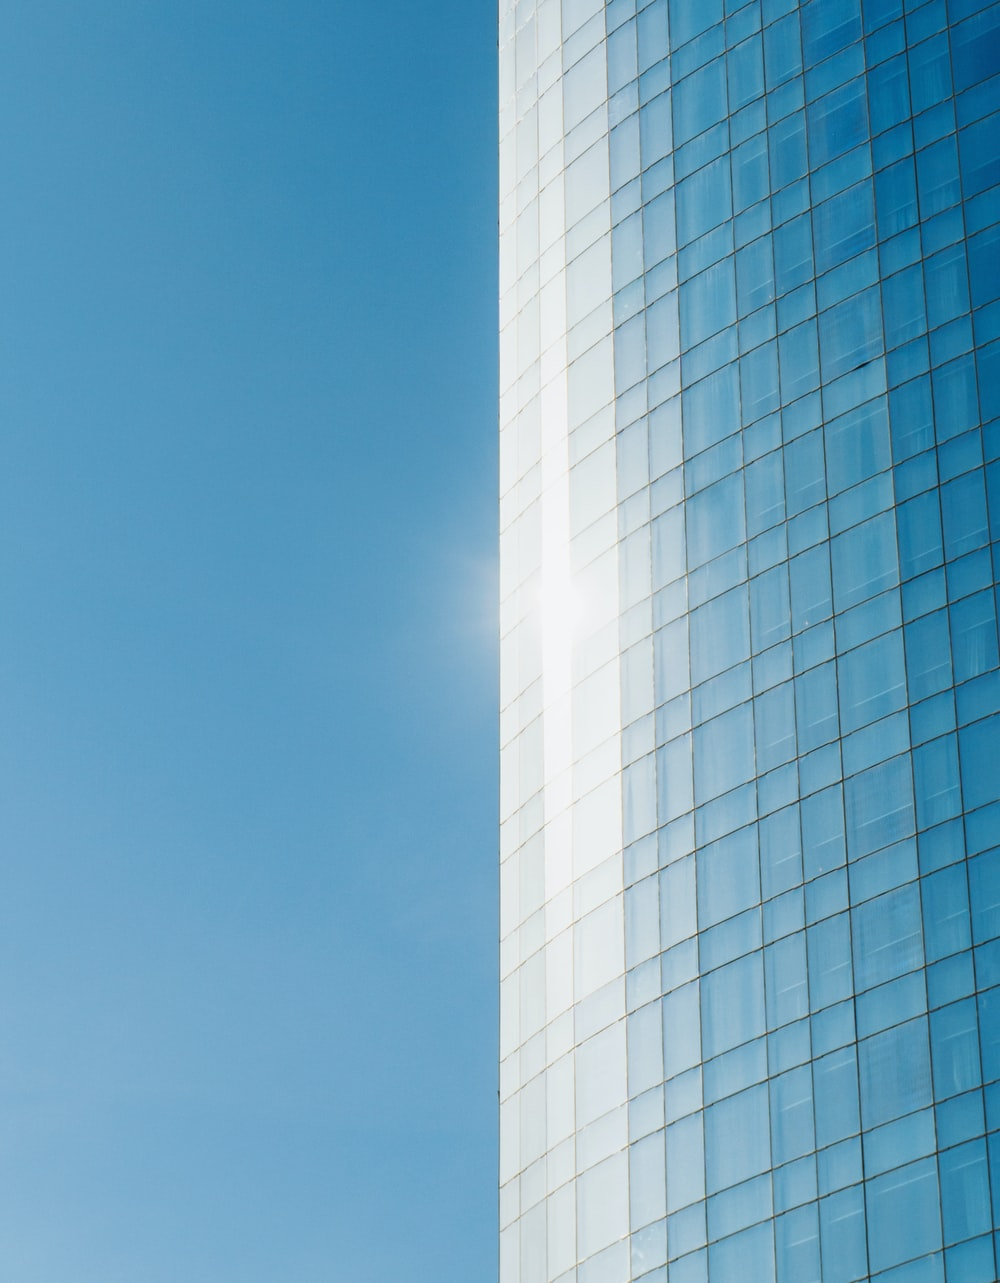 blue glass building photography